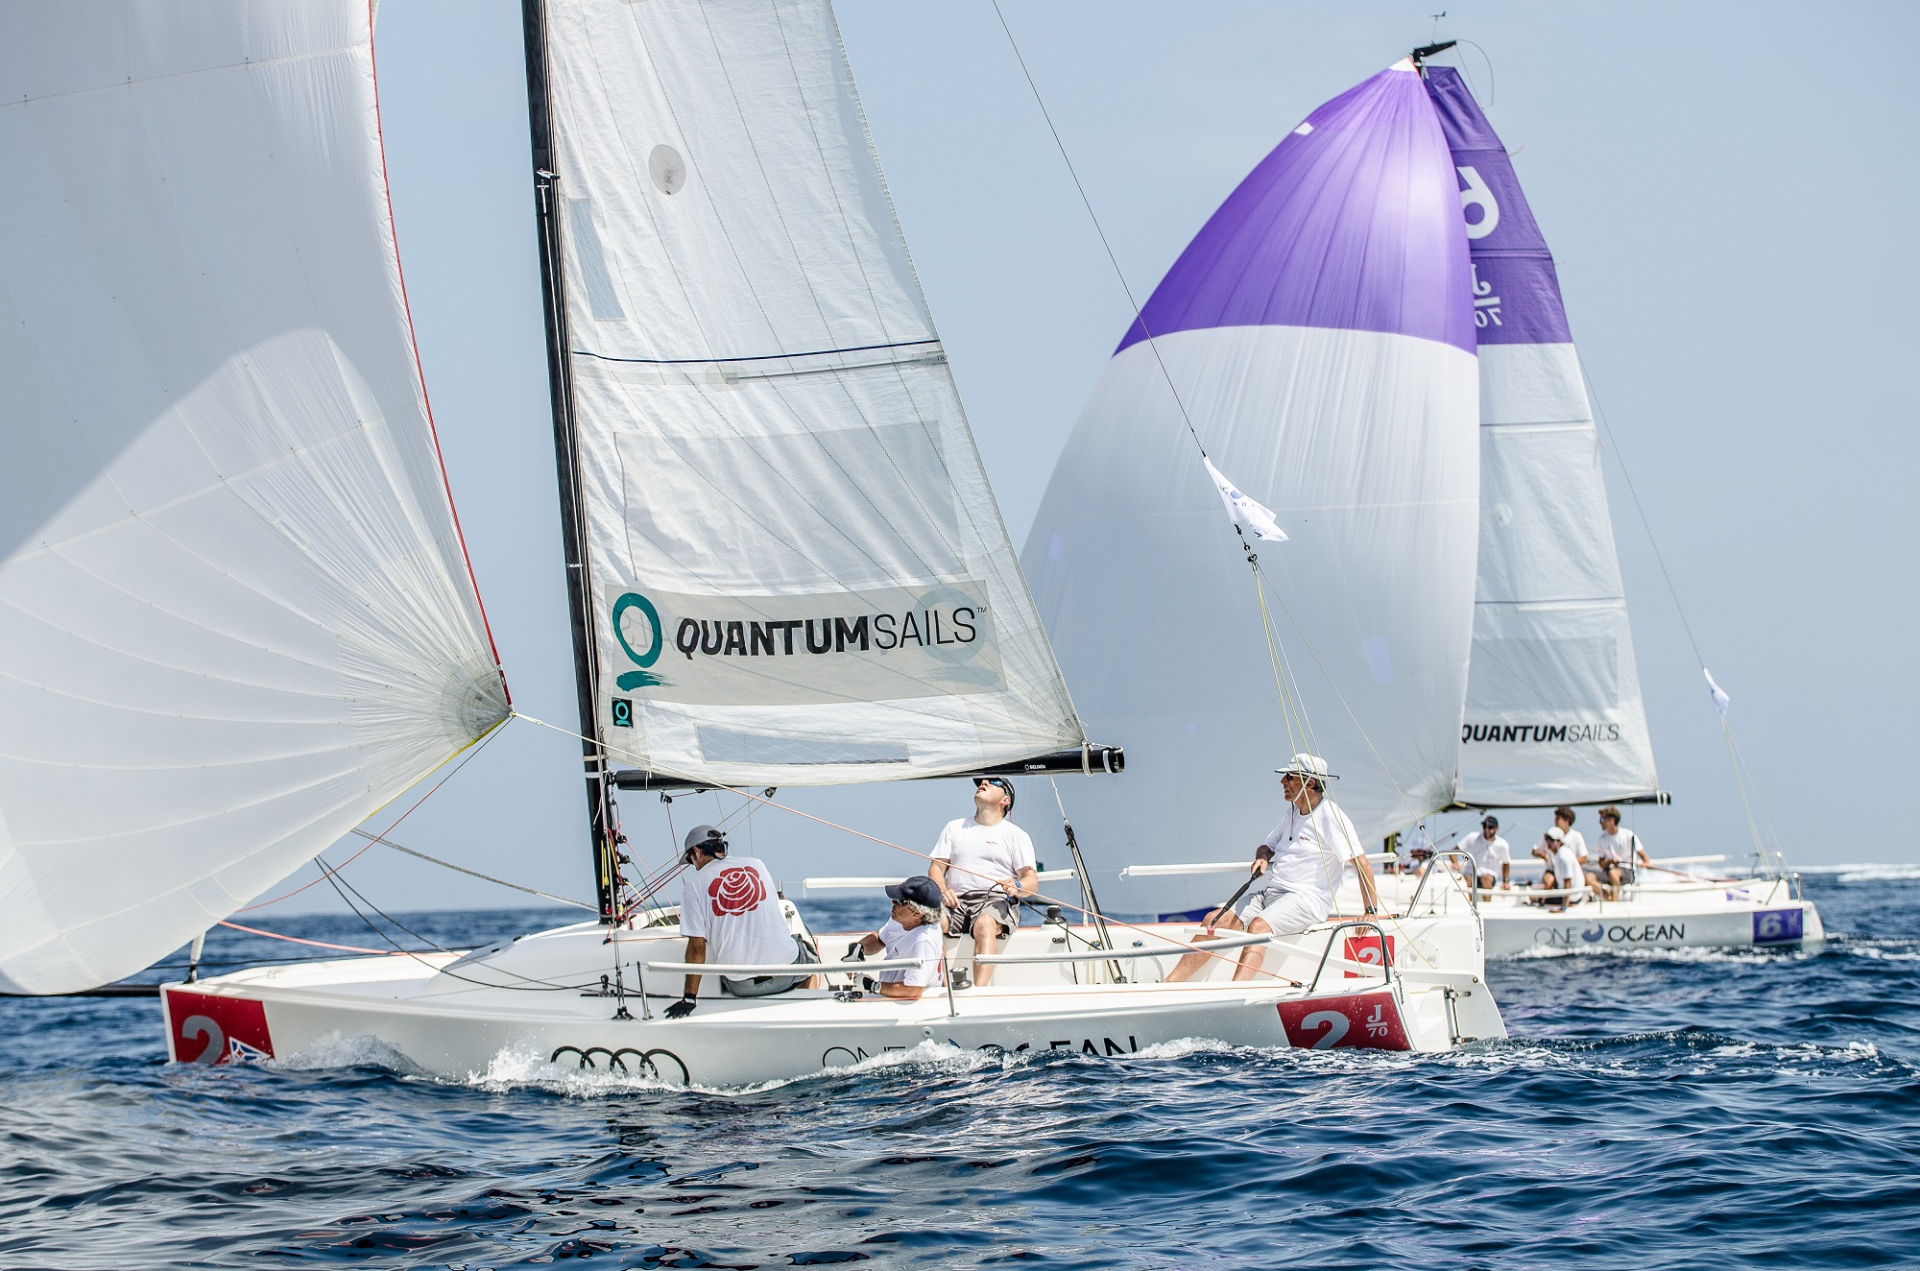 Sporting events for YCCS Members - NEWS - Yacht Club Costa Smeralda